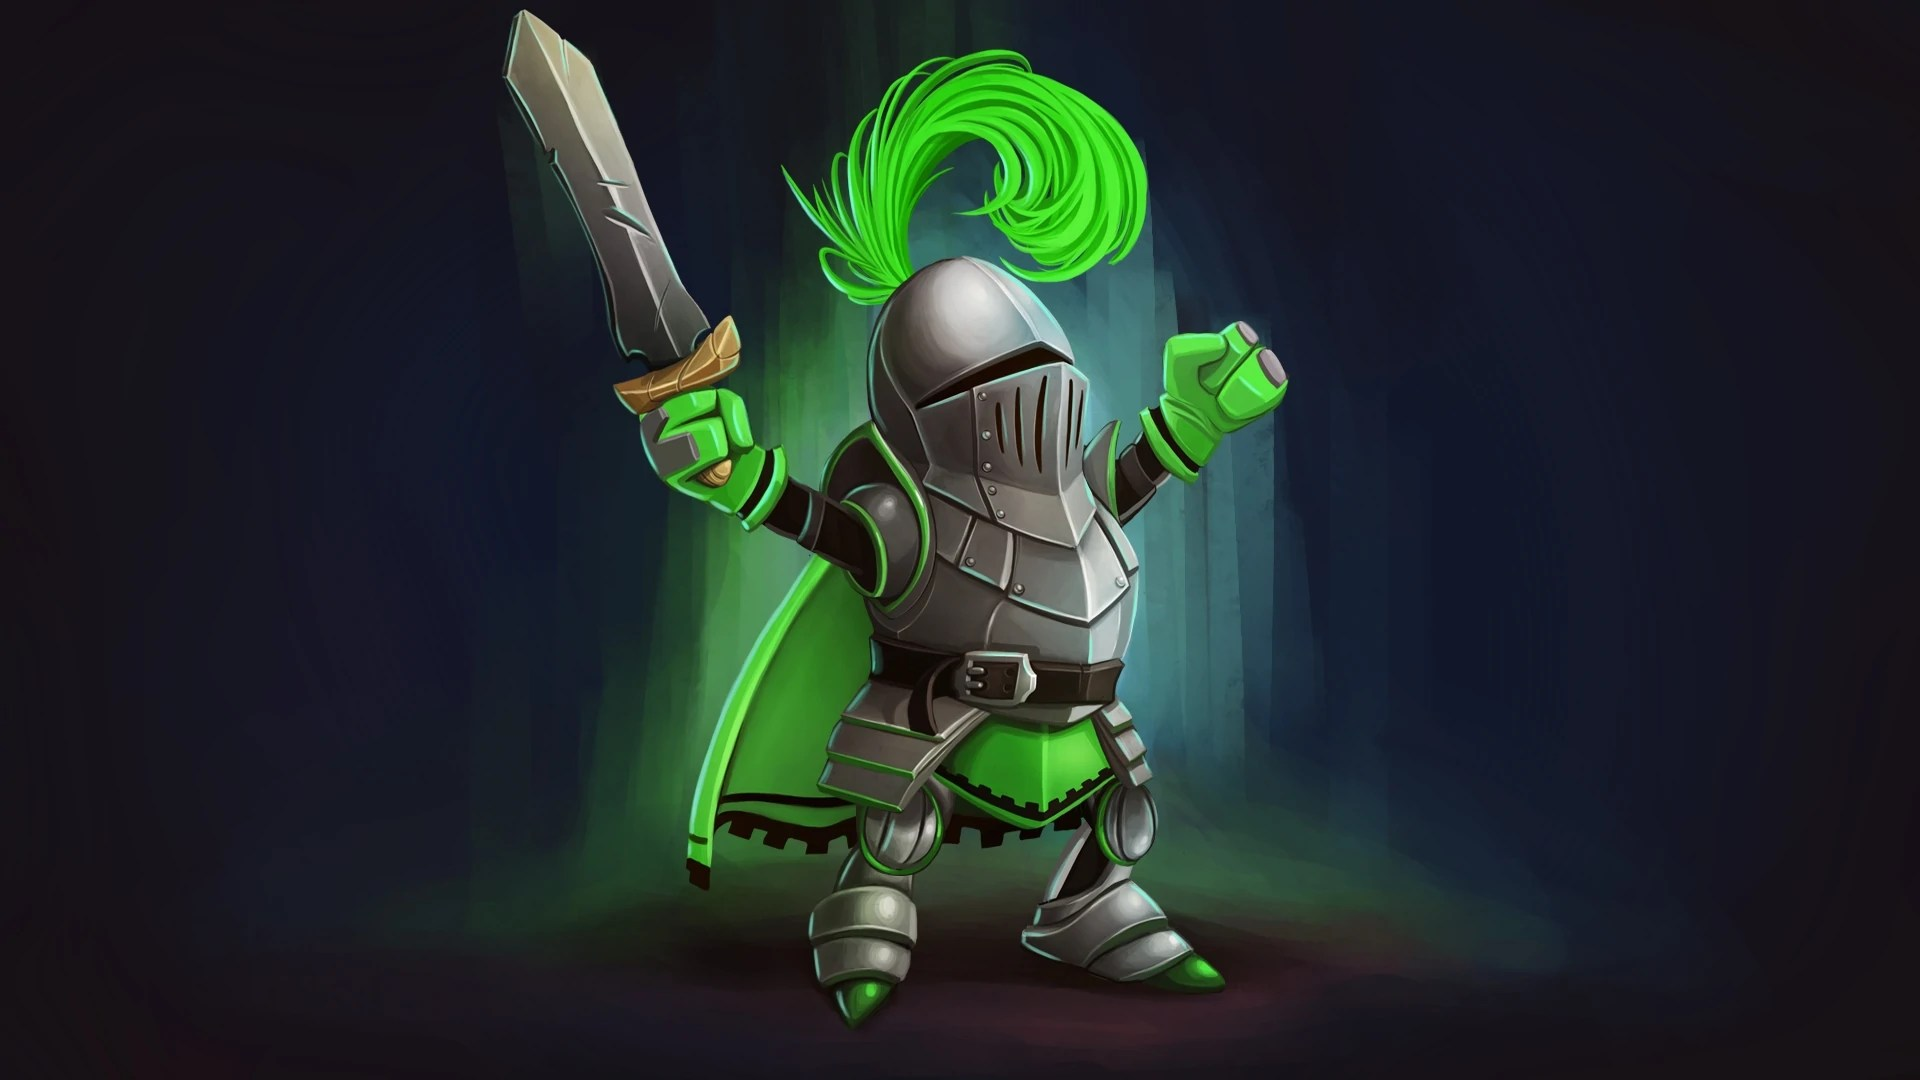 3d P Letter Wallpaper Knight Squad Green Knight Steam Trading Cards Wiki